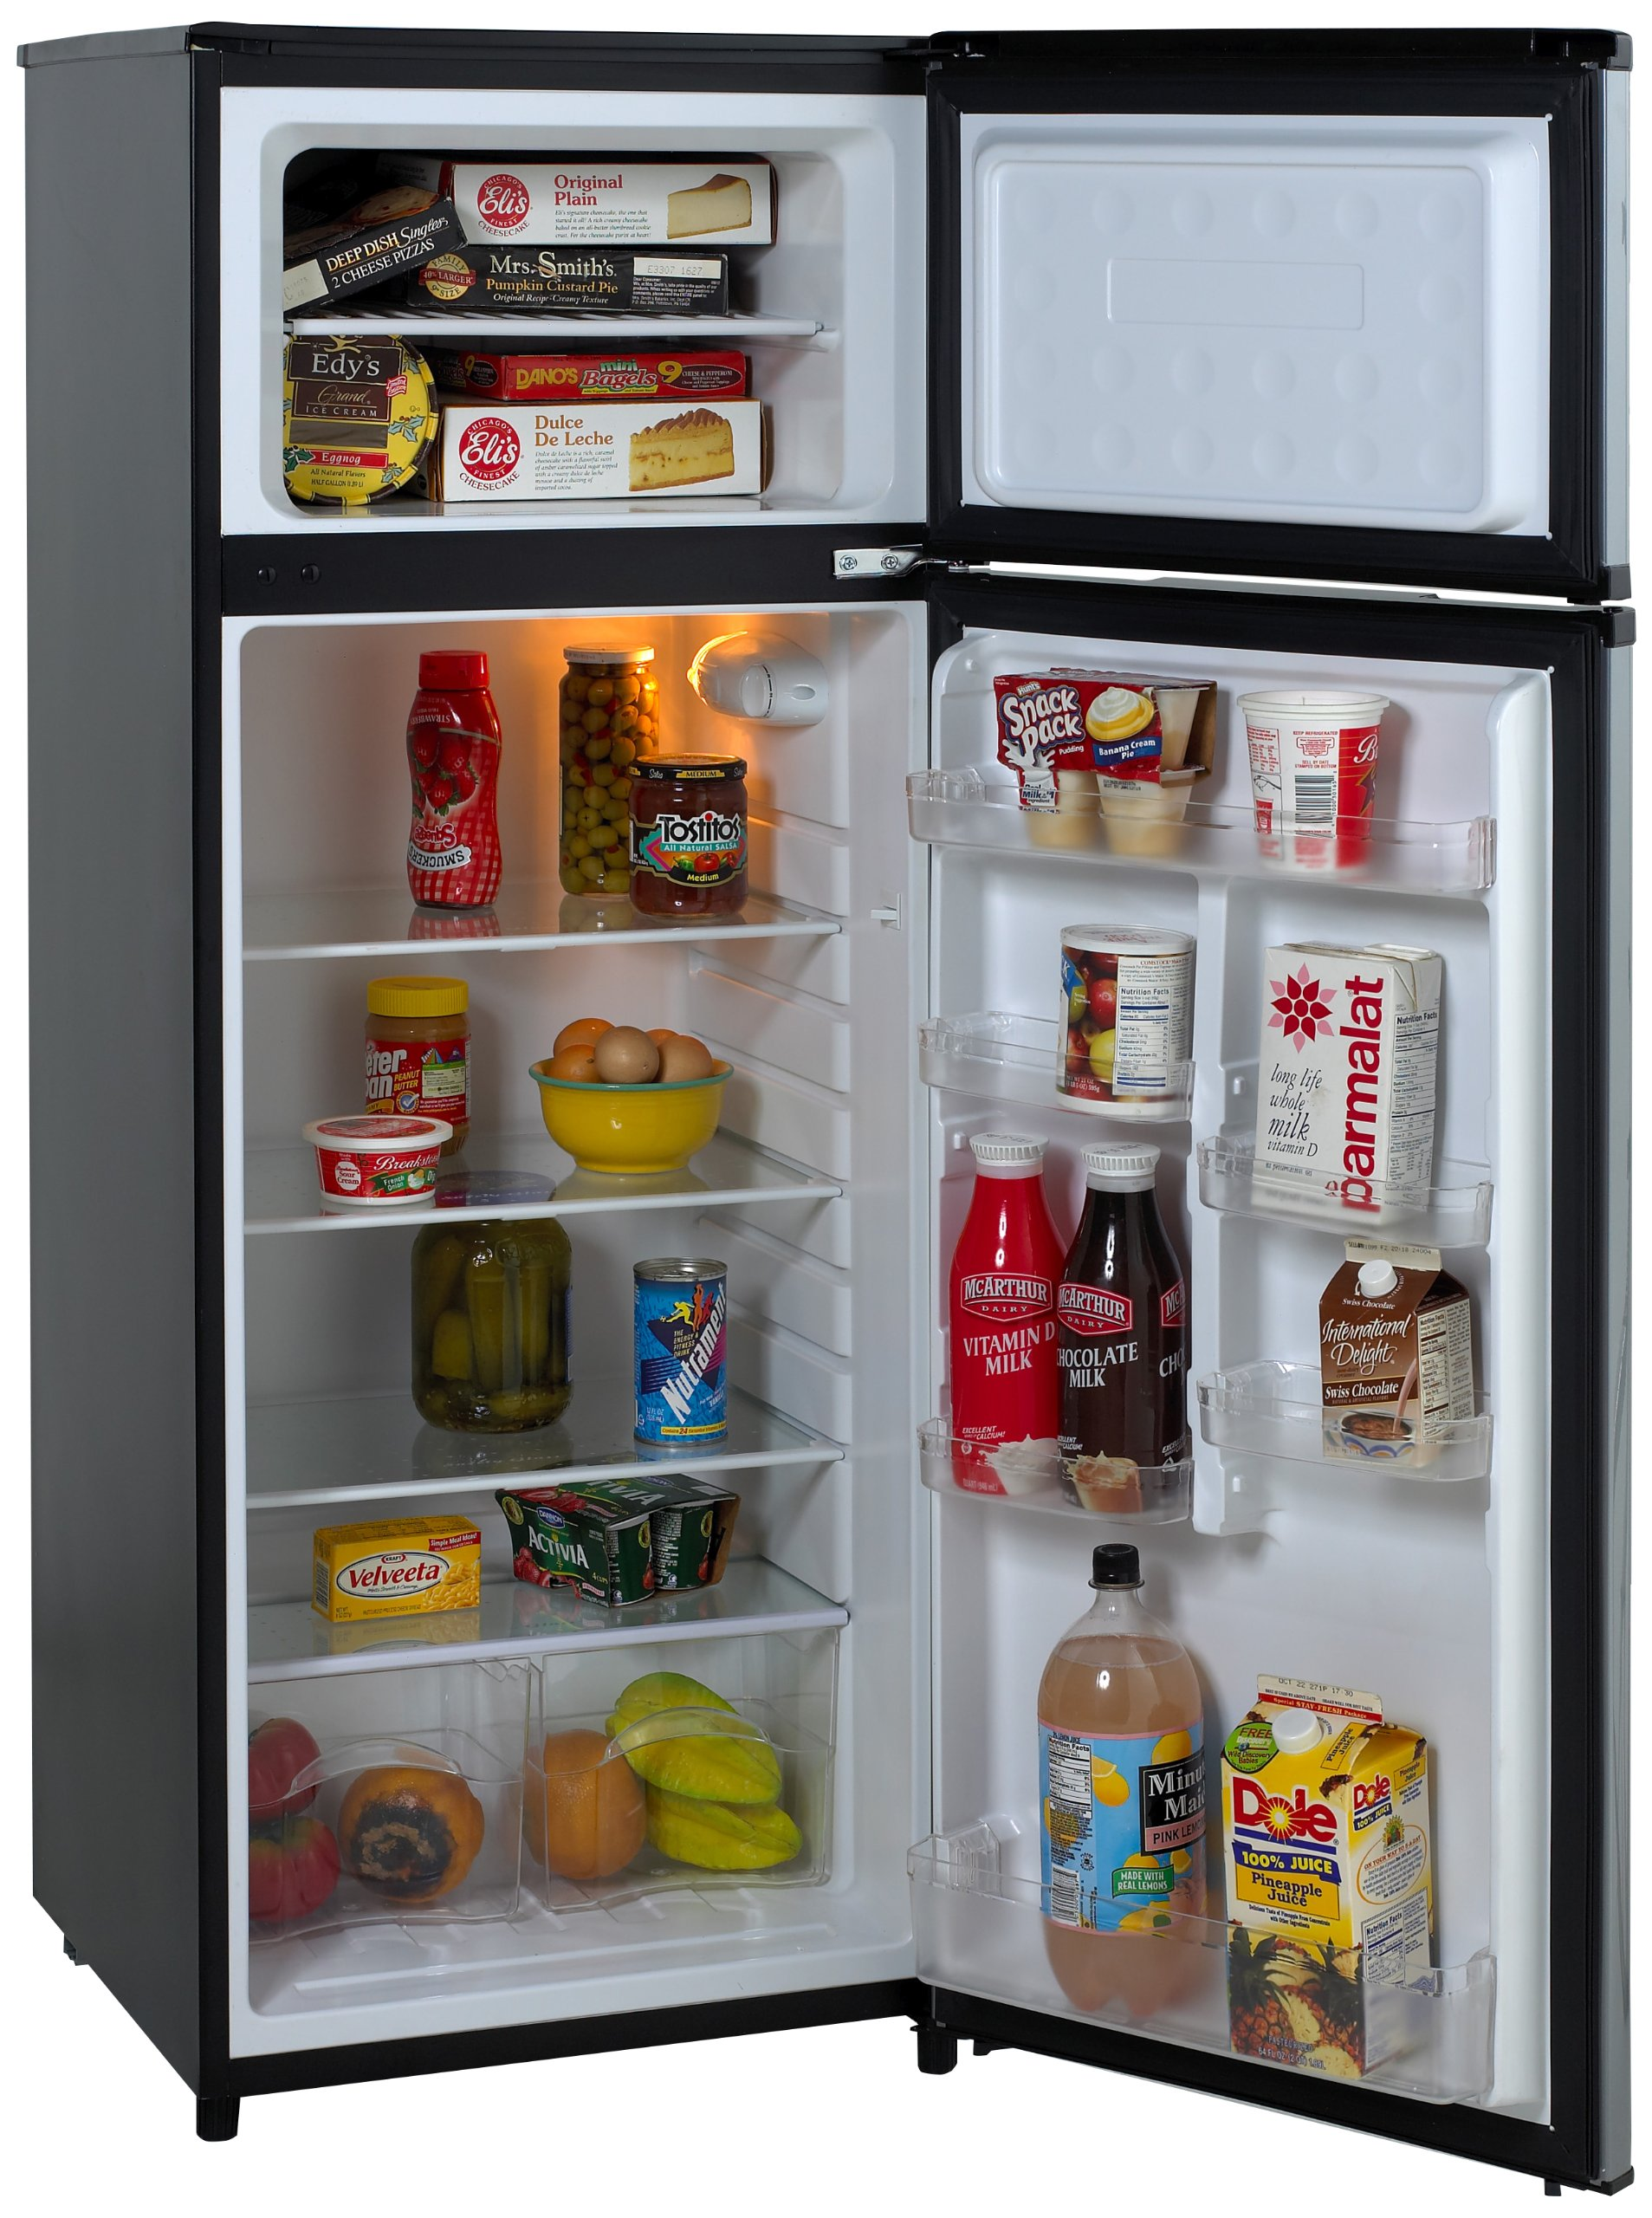 Avanti RA7316PST 2-Door Apartment Size Refrigerator, Black with Platinum Finish by Avanti